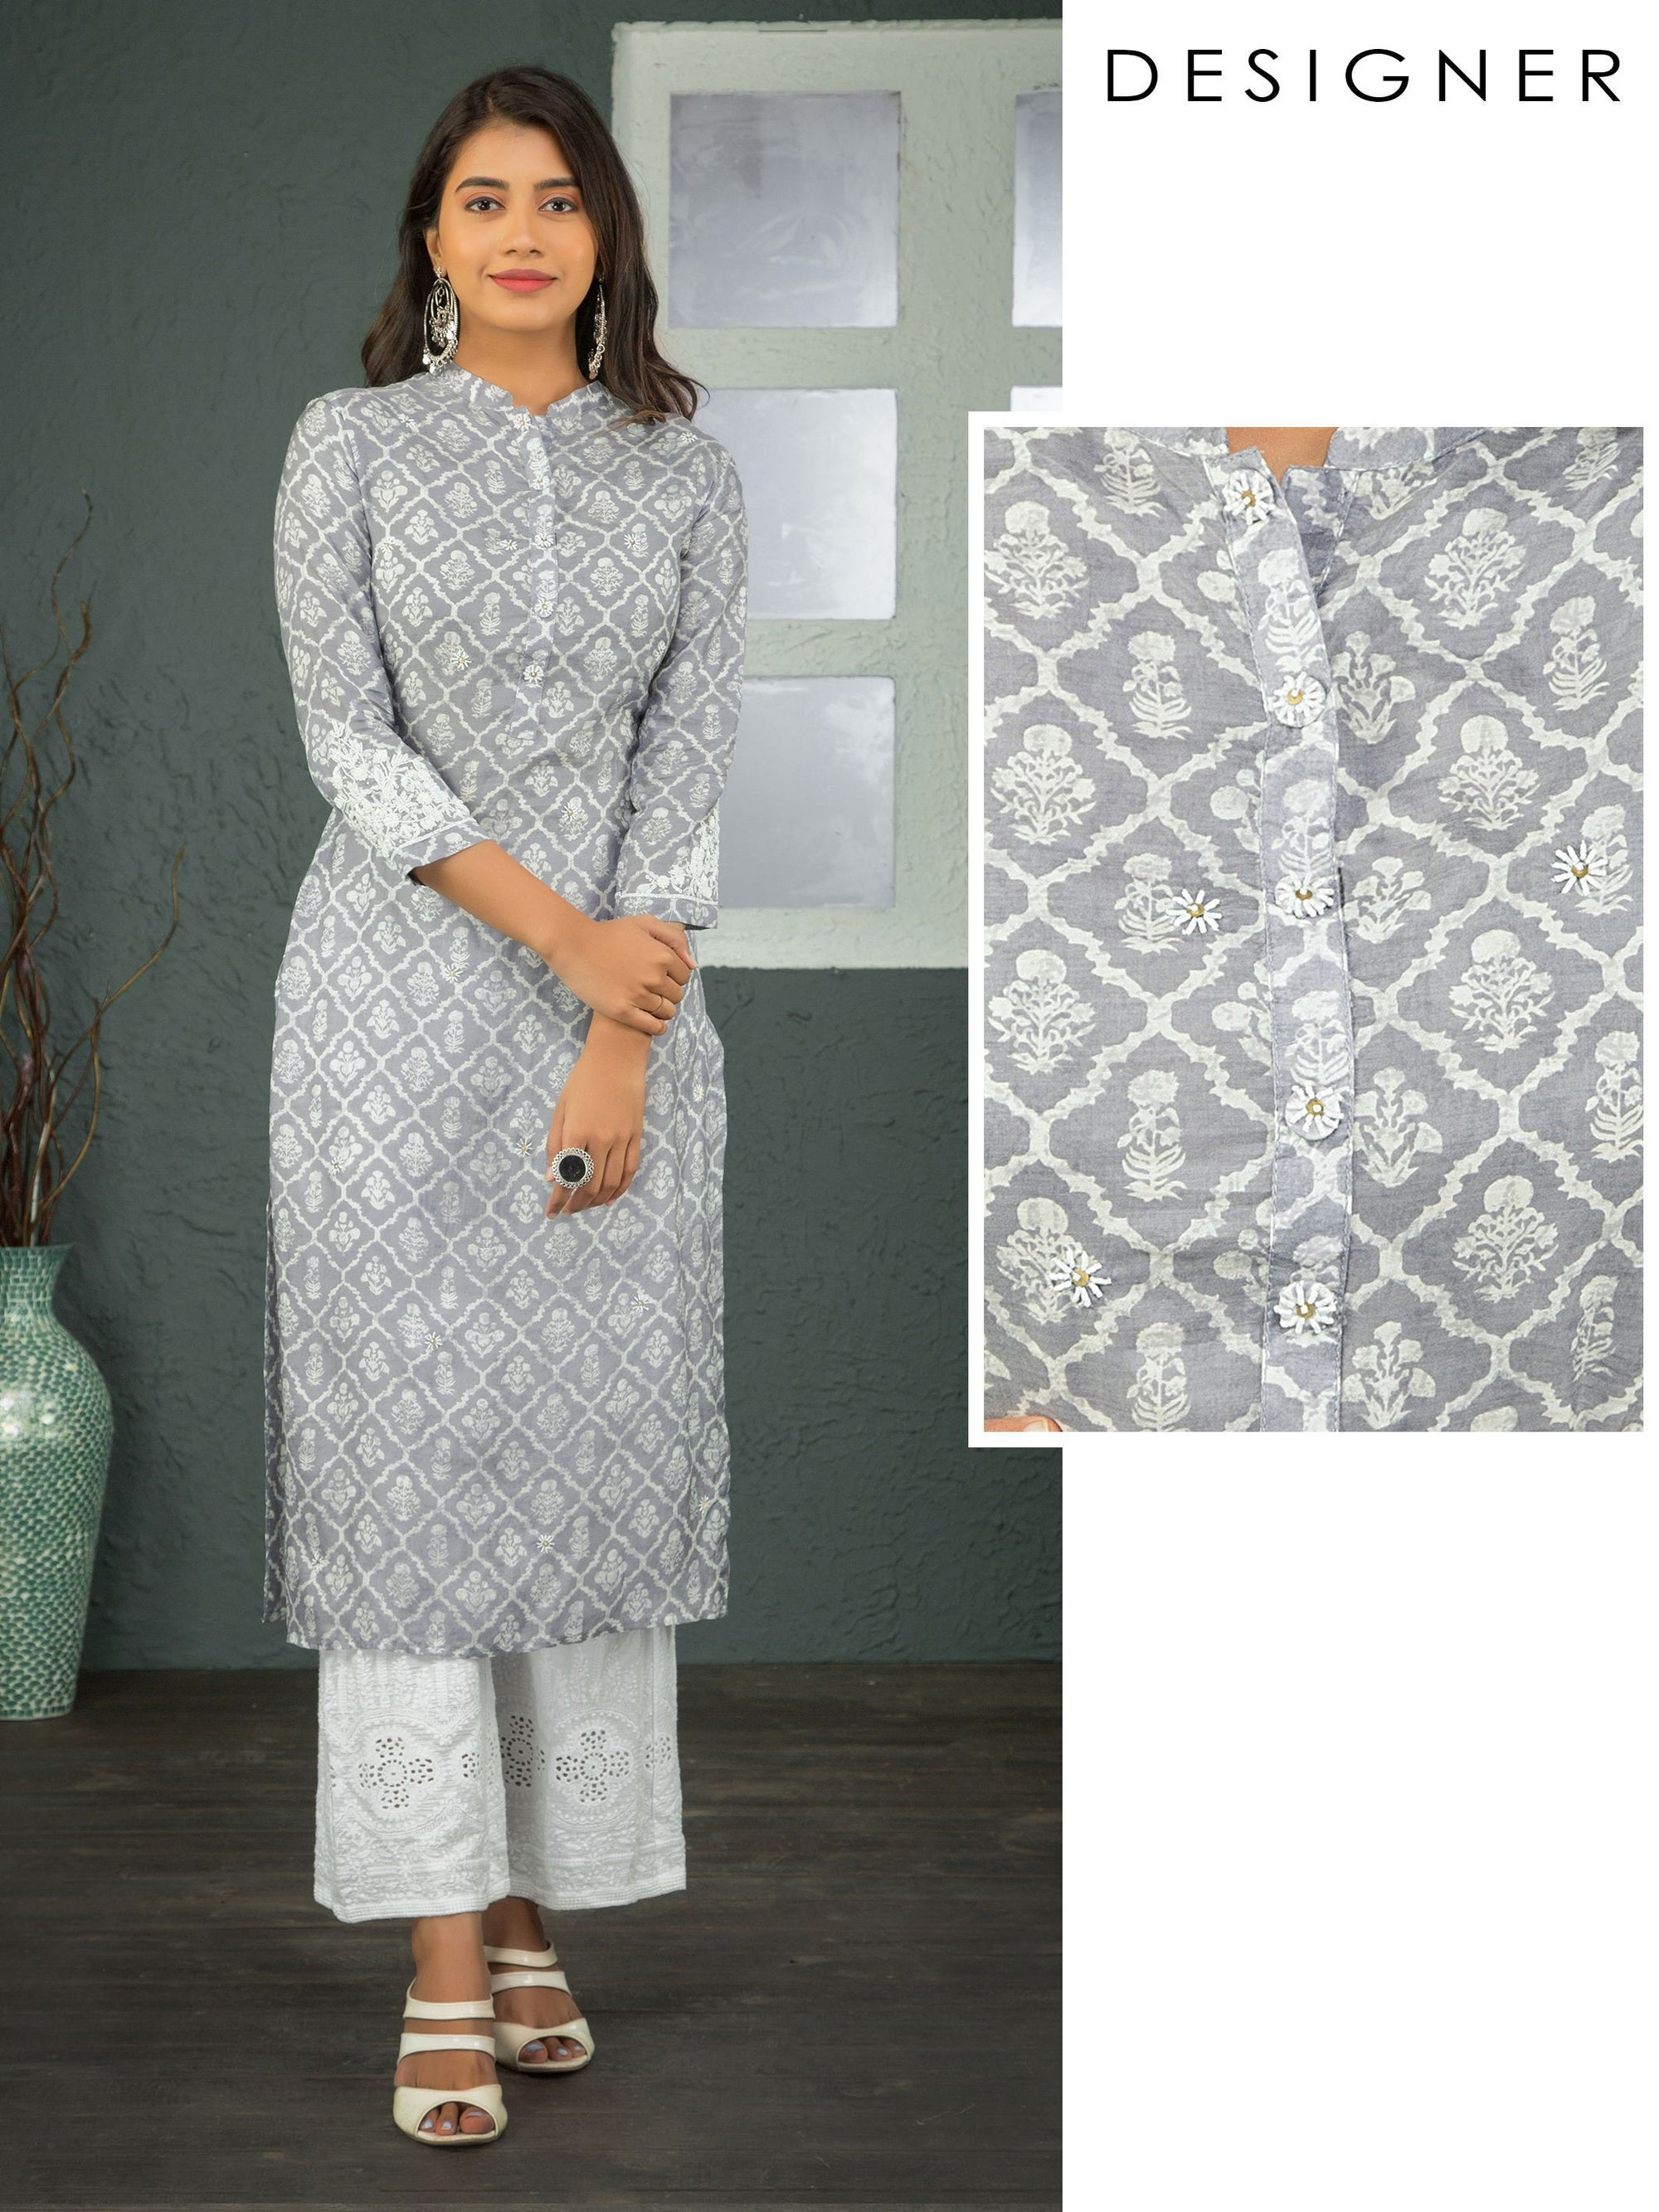 Floral Printed Kurta With Cutdana And French Knot Embroidery - Pigeon Grey